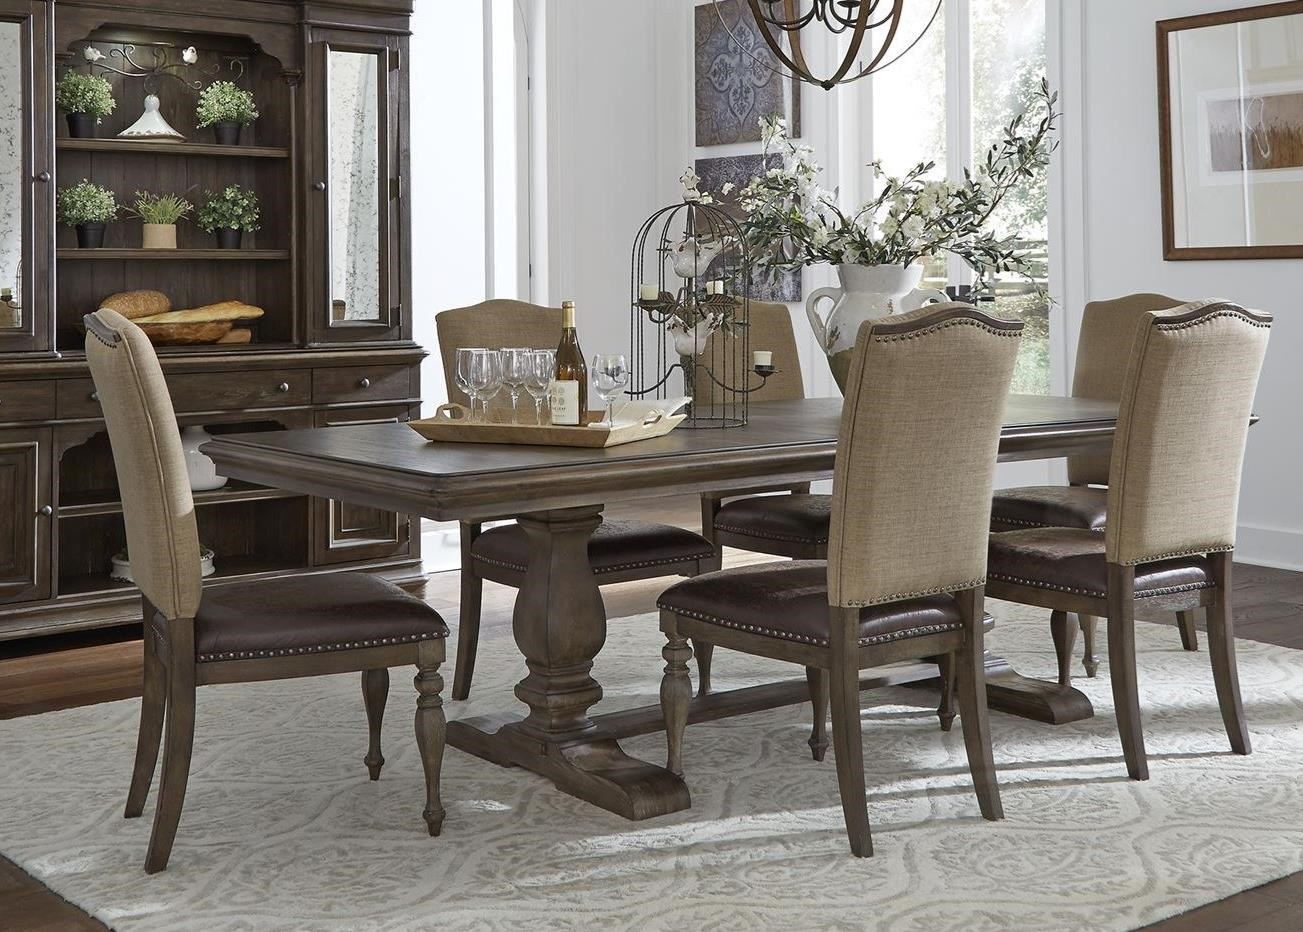 Homestead 7-Piece Table and Chair Set by Liberty Furniture at Furniture and ApplianceMart